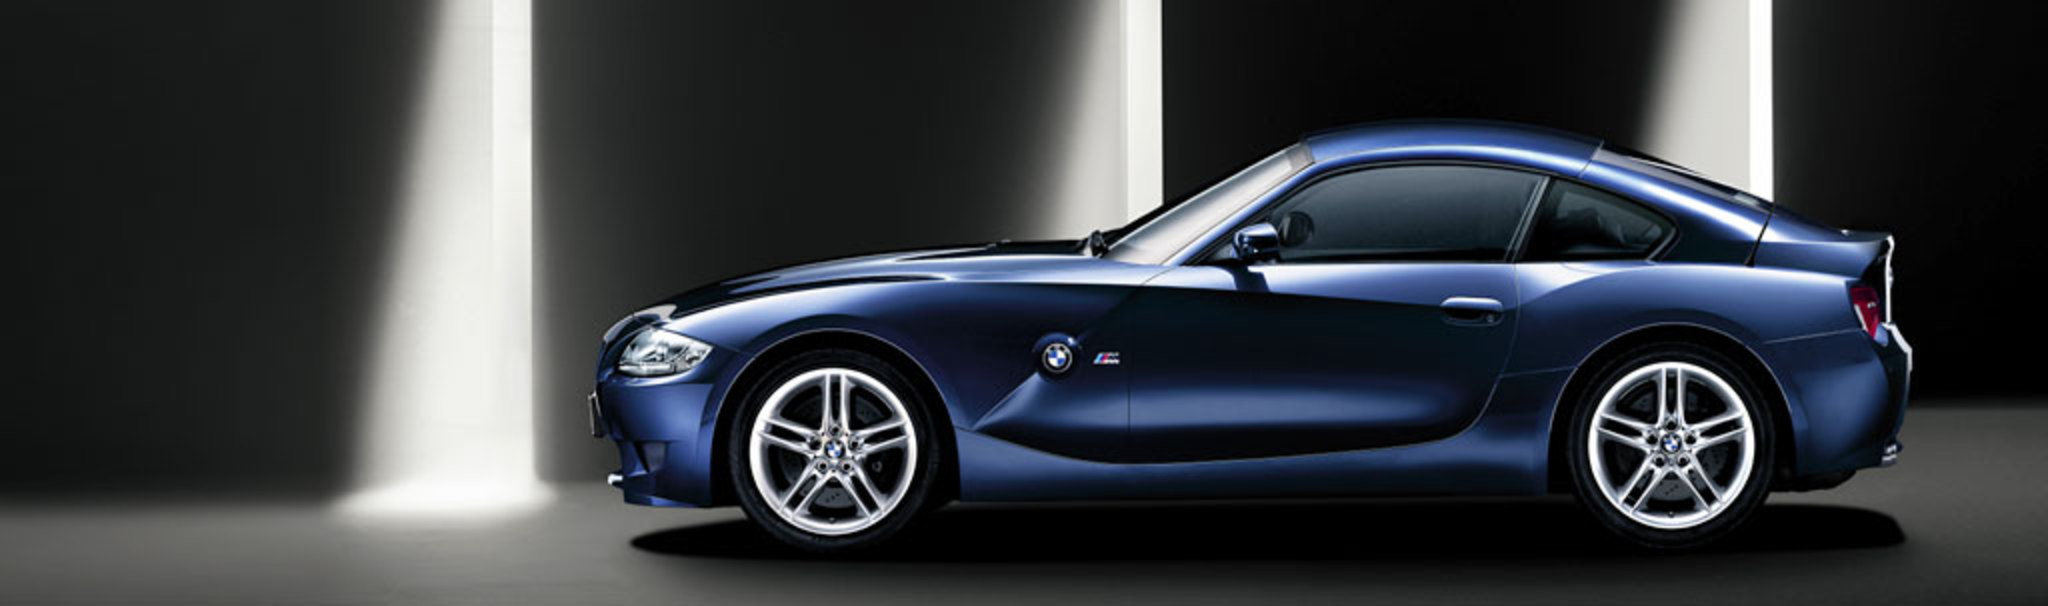 BMW Z4 M coup. View Download Wallpaper. 1024x303. Comments